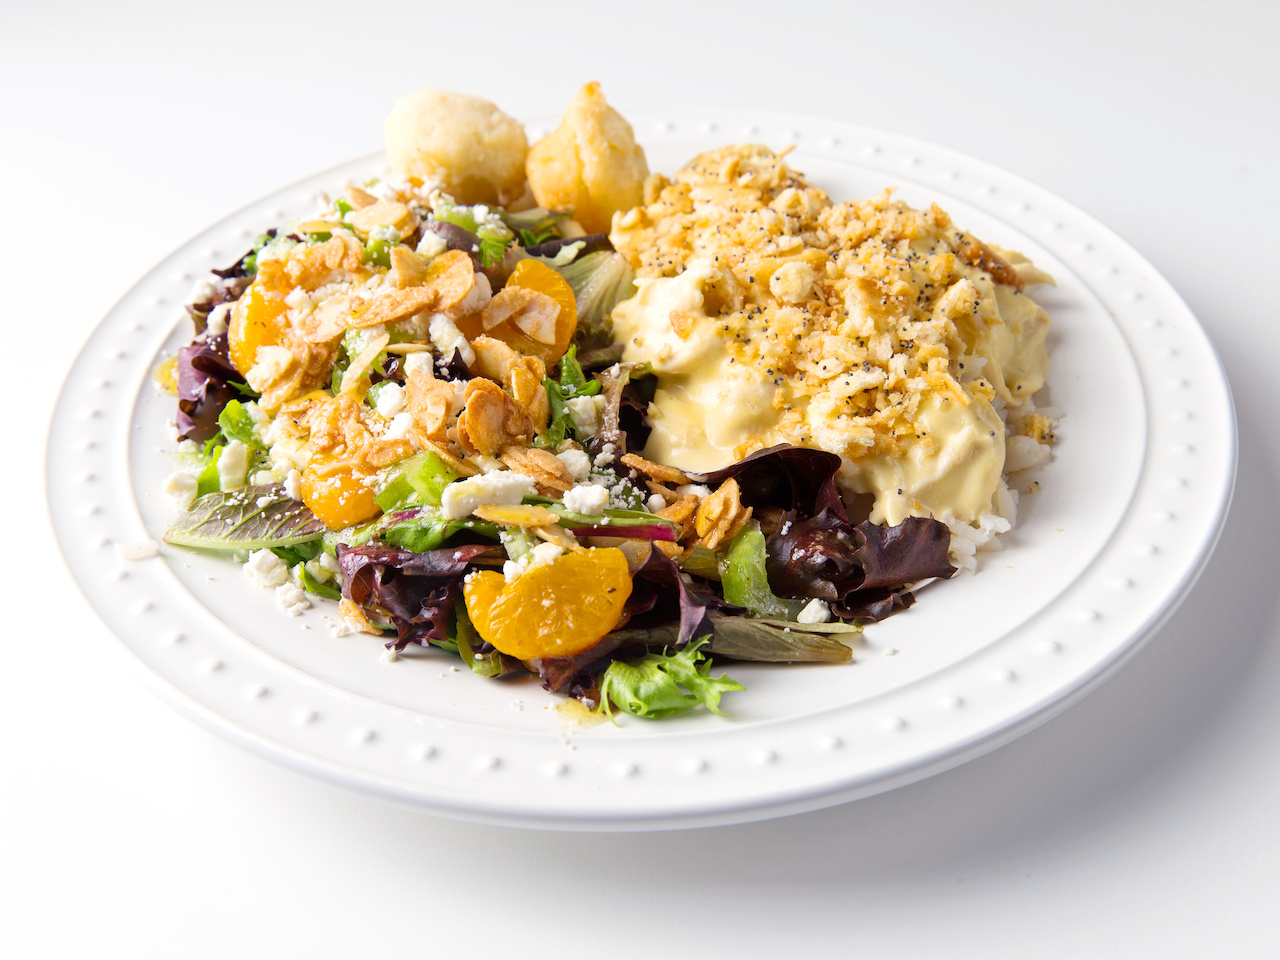 Pictured here are Ashley Mac's poppyseed chicken, $42.49 for a large (serves 8-10); Mandarin orange salad, $24.99 for a large (serves 8-10); and sour cream biscuits, $6.99 for a baker's dozen. And check out Ashley Mac's Gourmet To-Go menu online. To guarantee availability, place your order 48 hours ahead of your desired pick-up date.